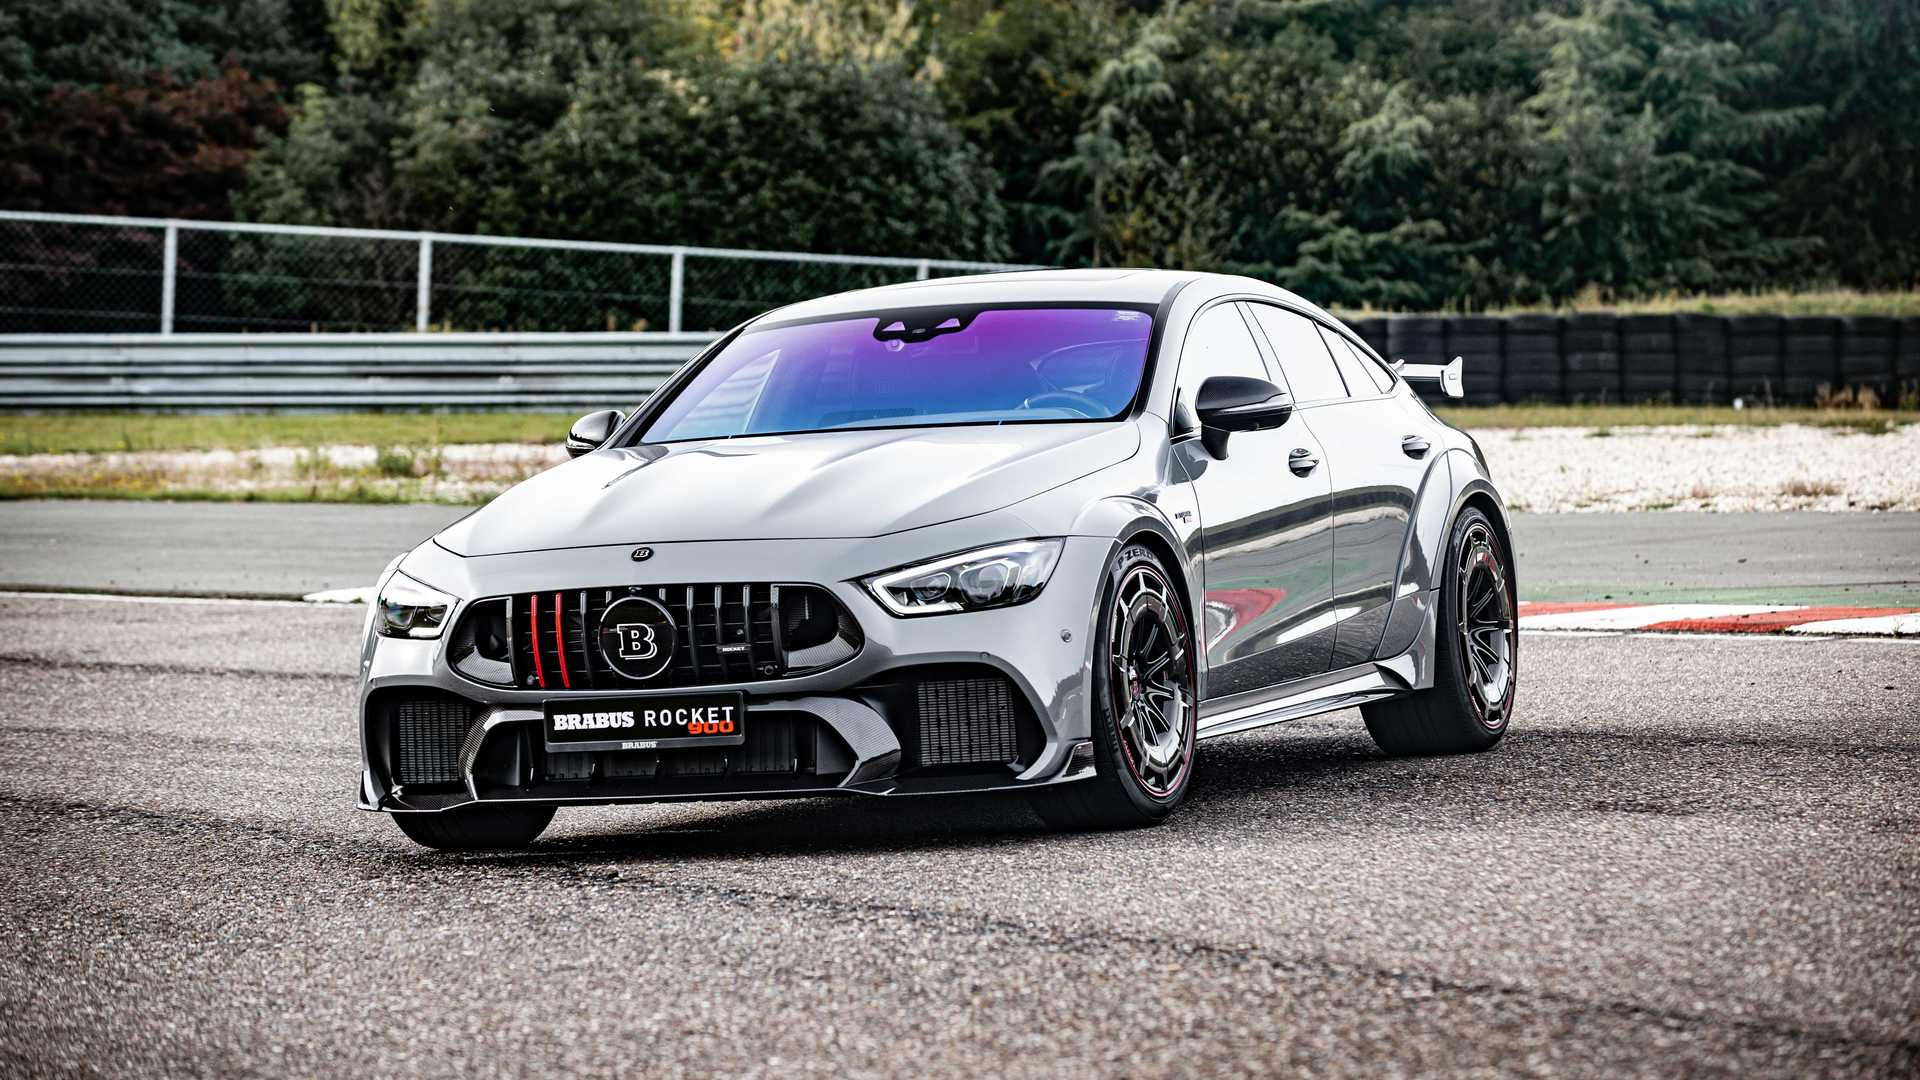 The Brabus Rocket 900 is an ultra-exclusive Mercedes-AMG GT 63 S series of just ten vehicles, coming with numerous costly upgrades and priced starting from €435,800 for the first unit made.